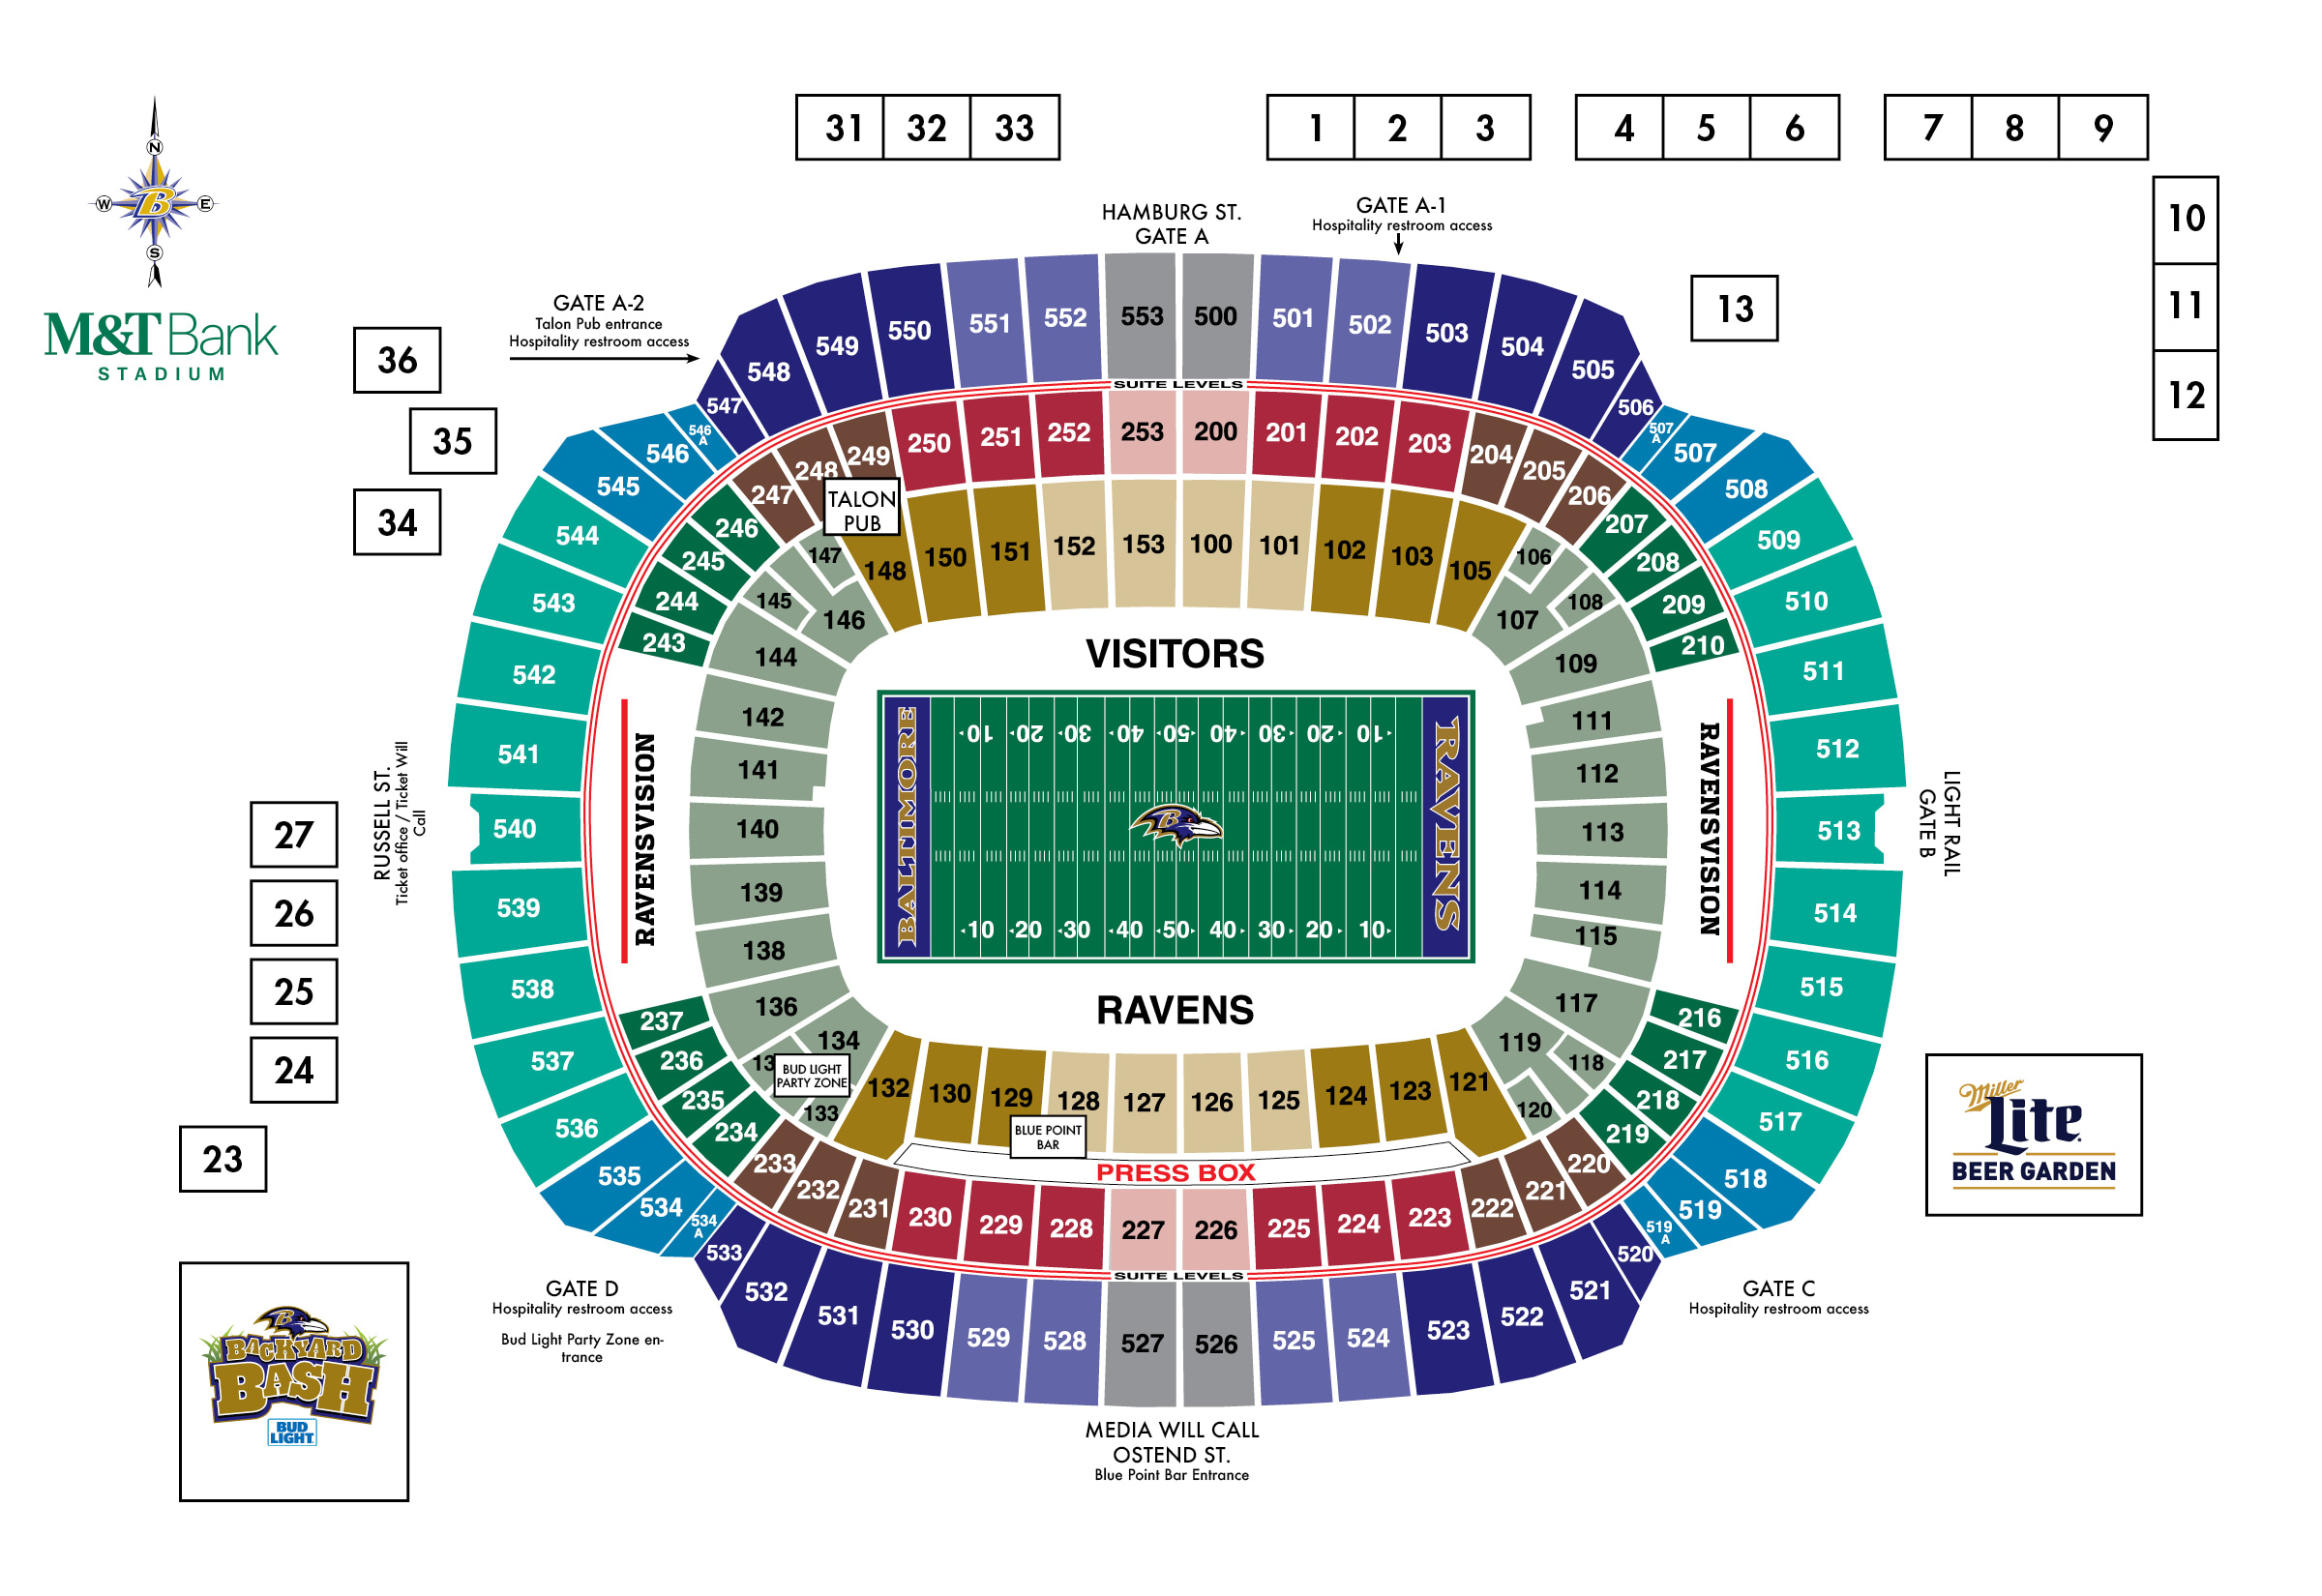 m\u0026t bank stadium diagrams baltimore ravens \u2013 baltimoreravens com Diagram of Arlington National Cemetery m\u0026t bank stadium diagrams